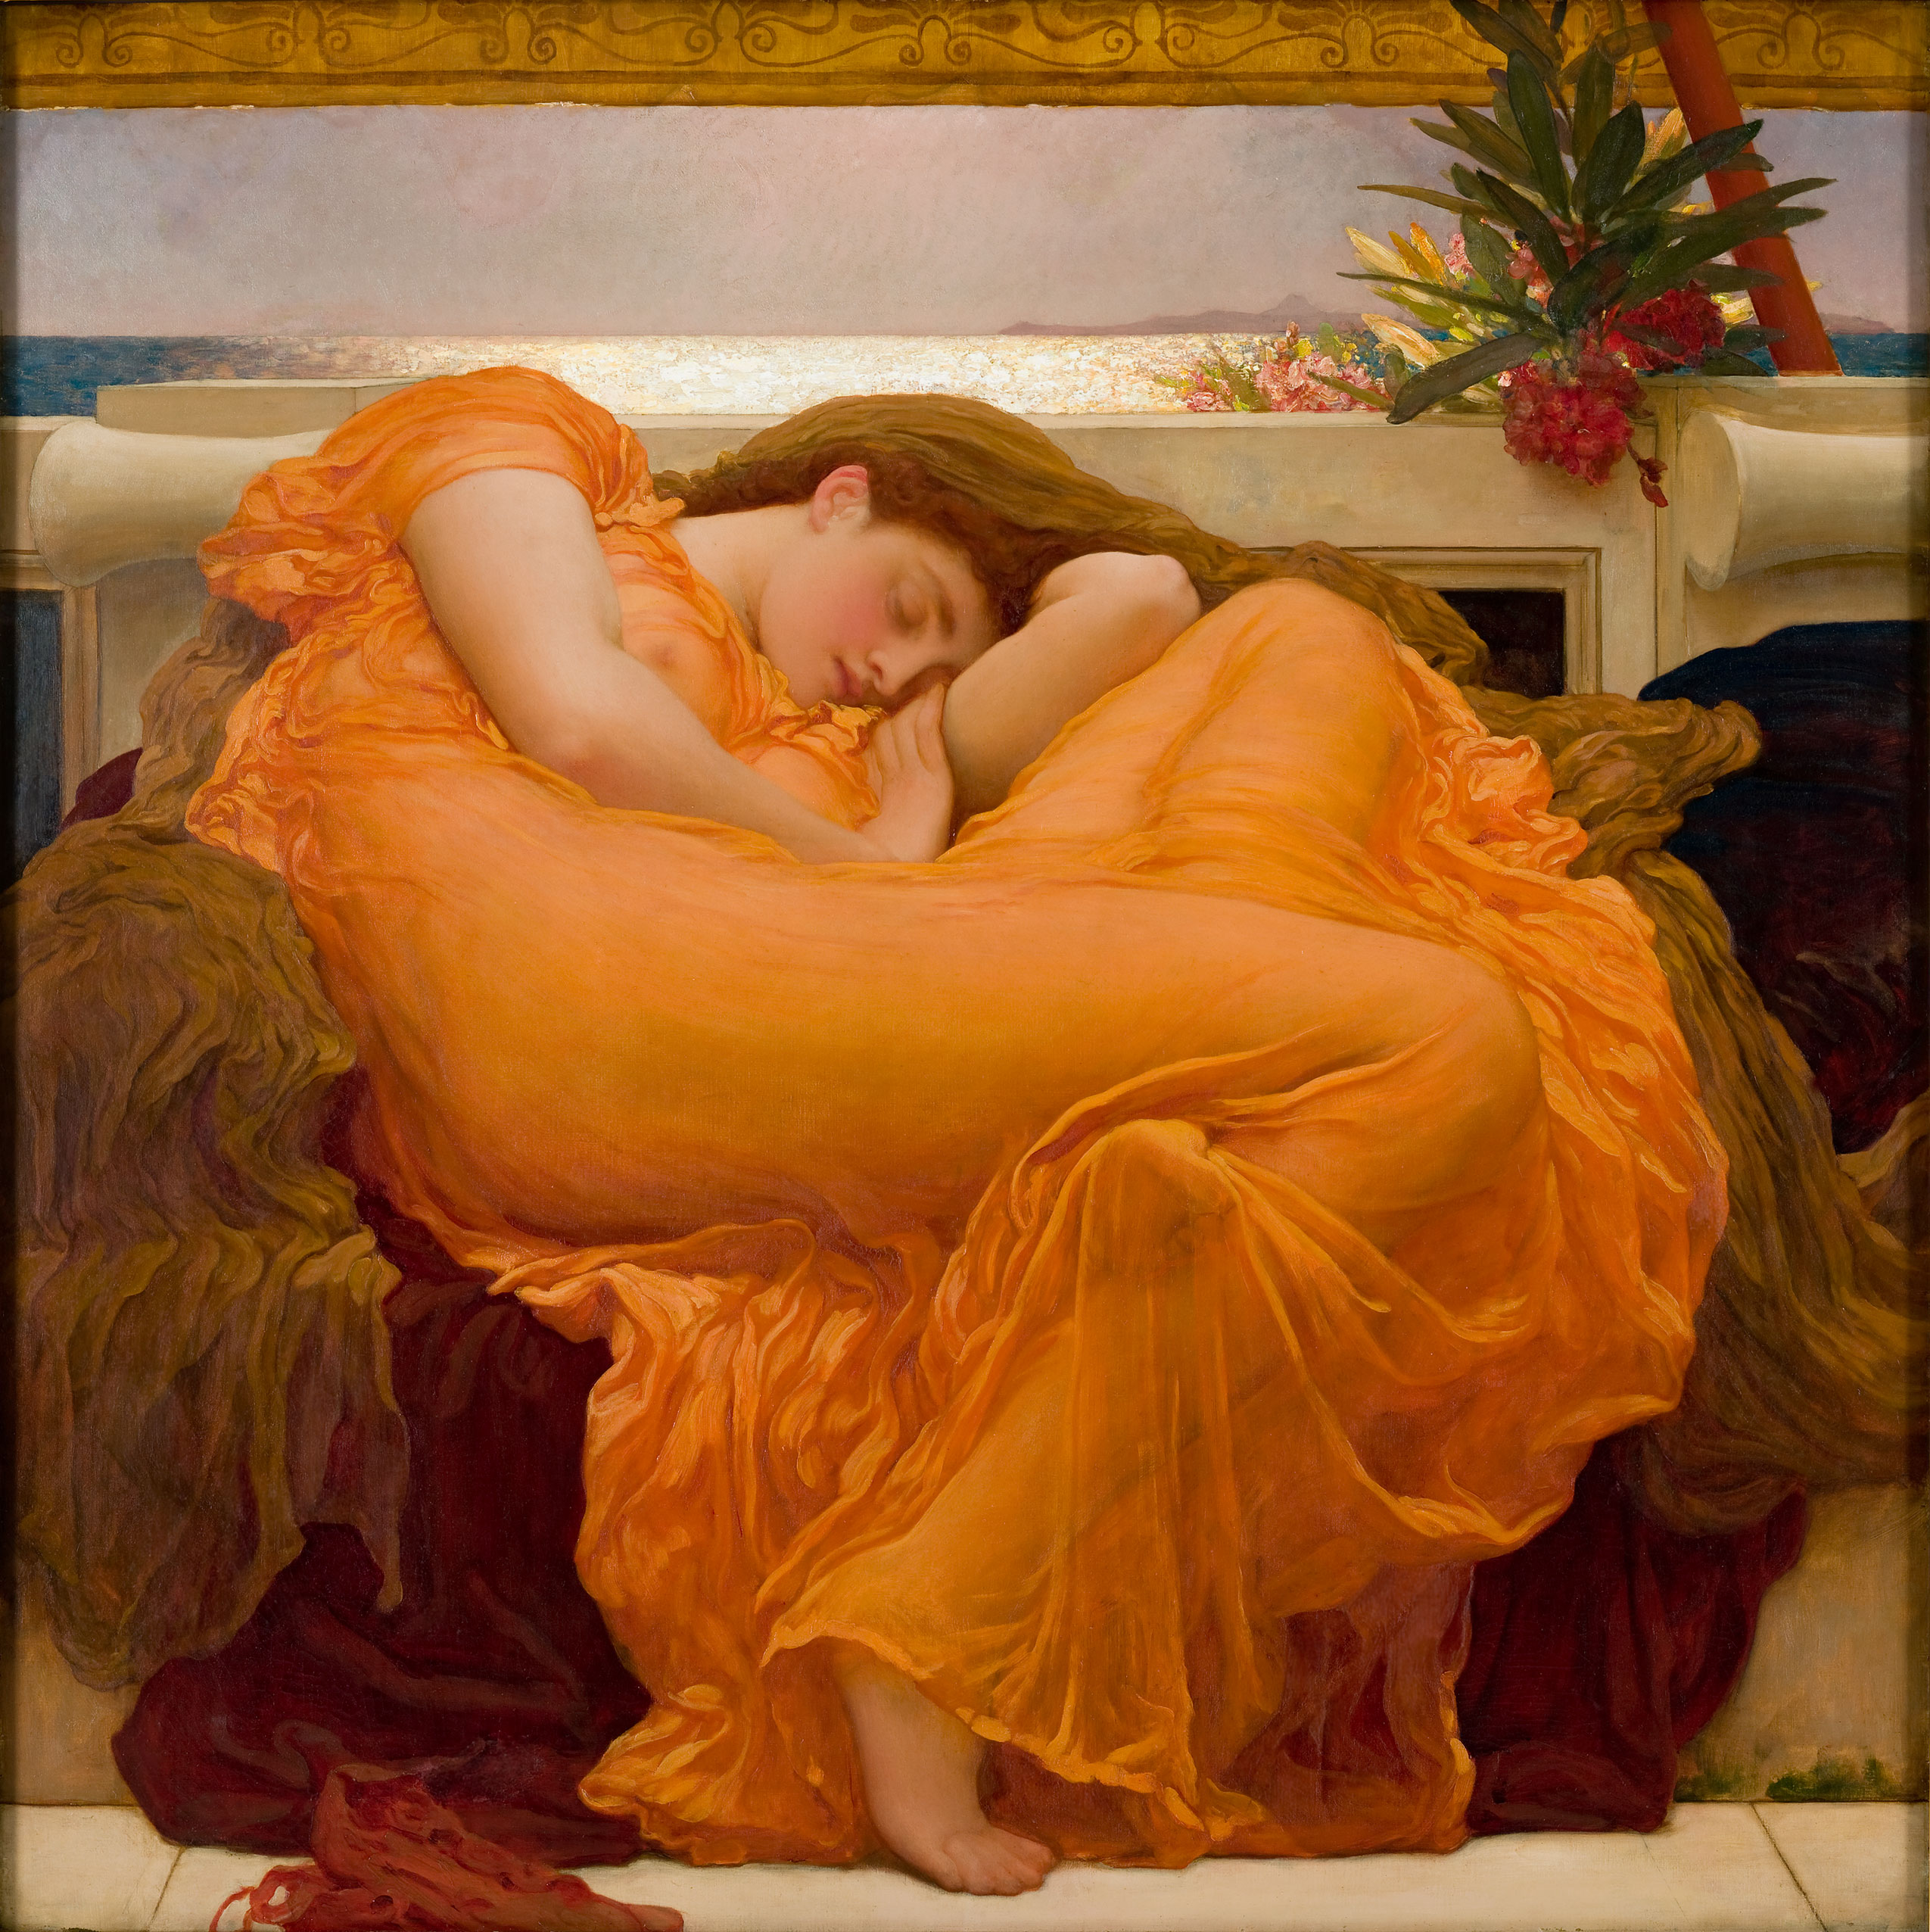 https://upload.wikimedia.org/wikipedia/commons/8/8d/Flaming_June%2C_by_Frederic_Lord_Leighton_%281830-1896%29.jpg